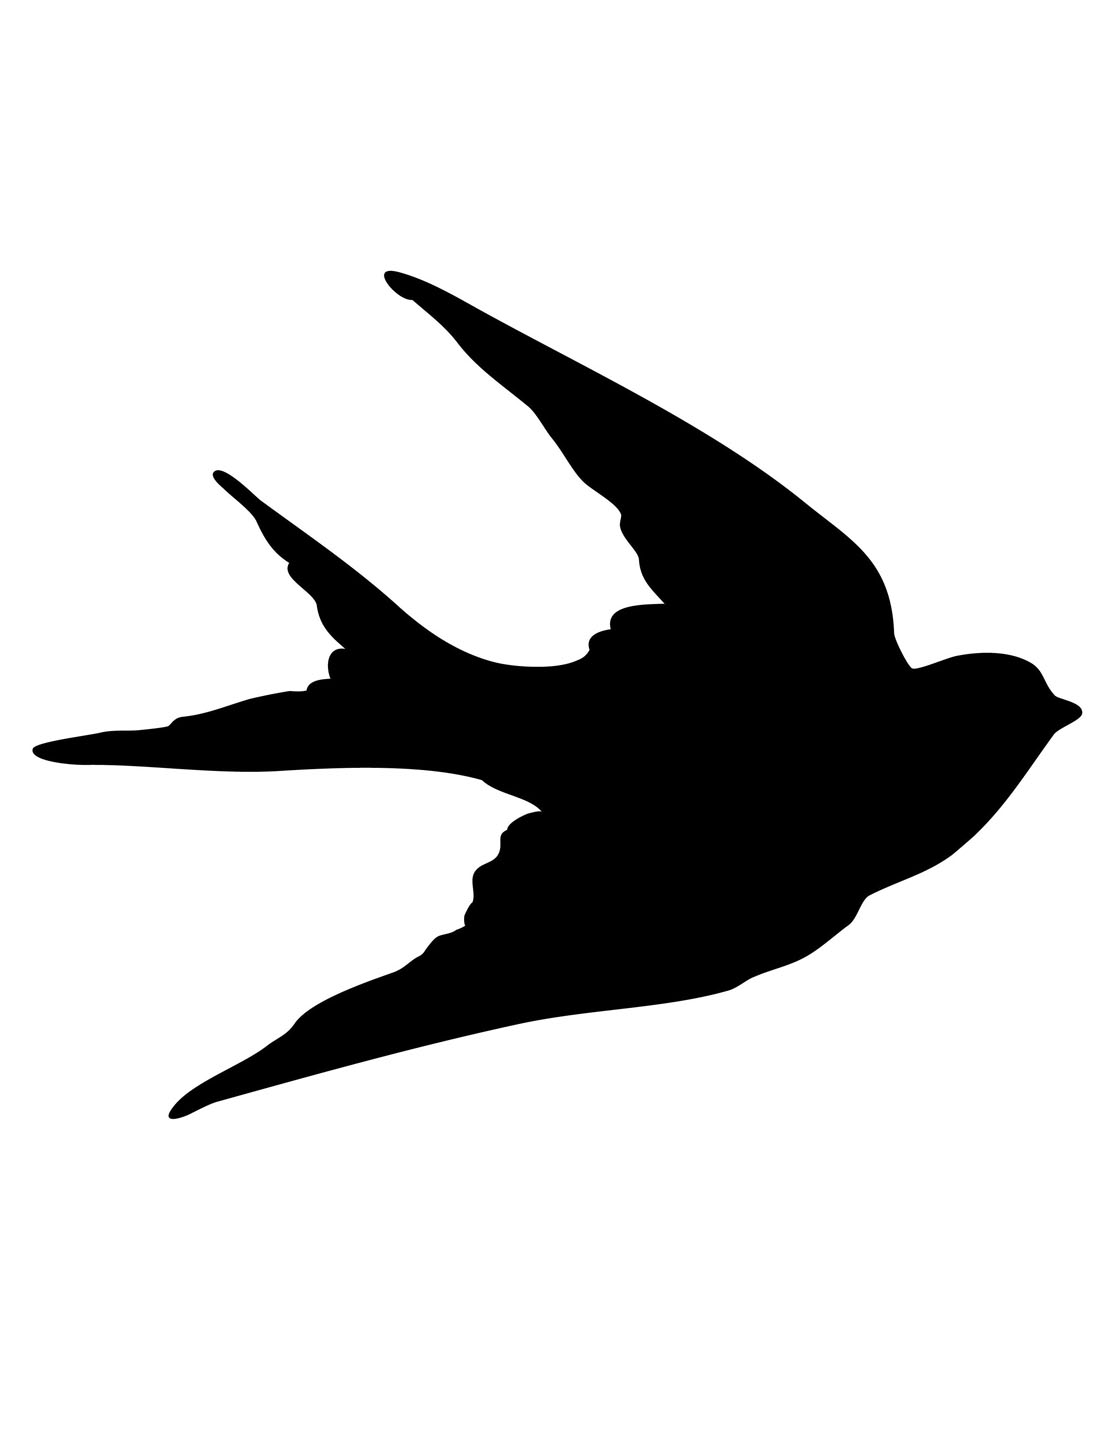 6 Images of Flying Bird Silhouette Printable